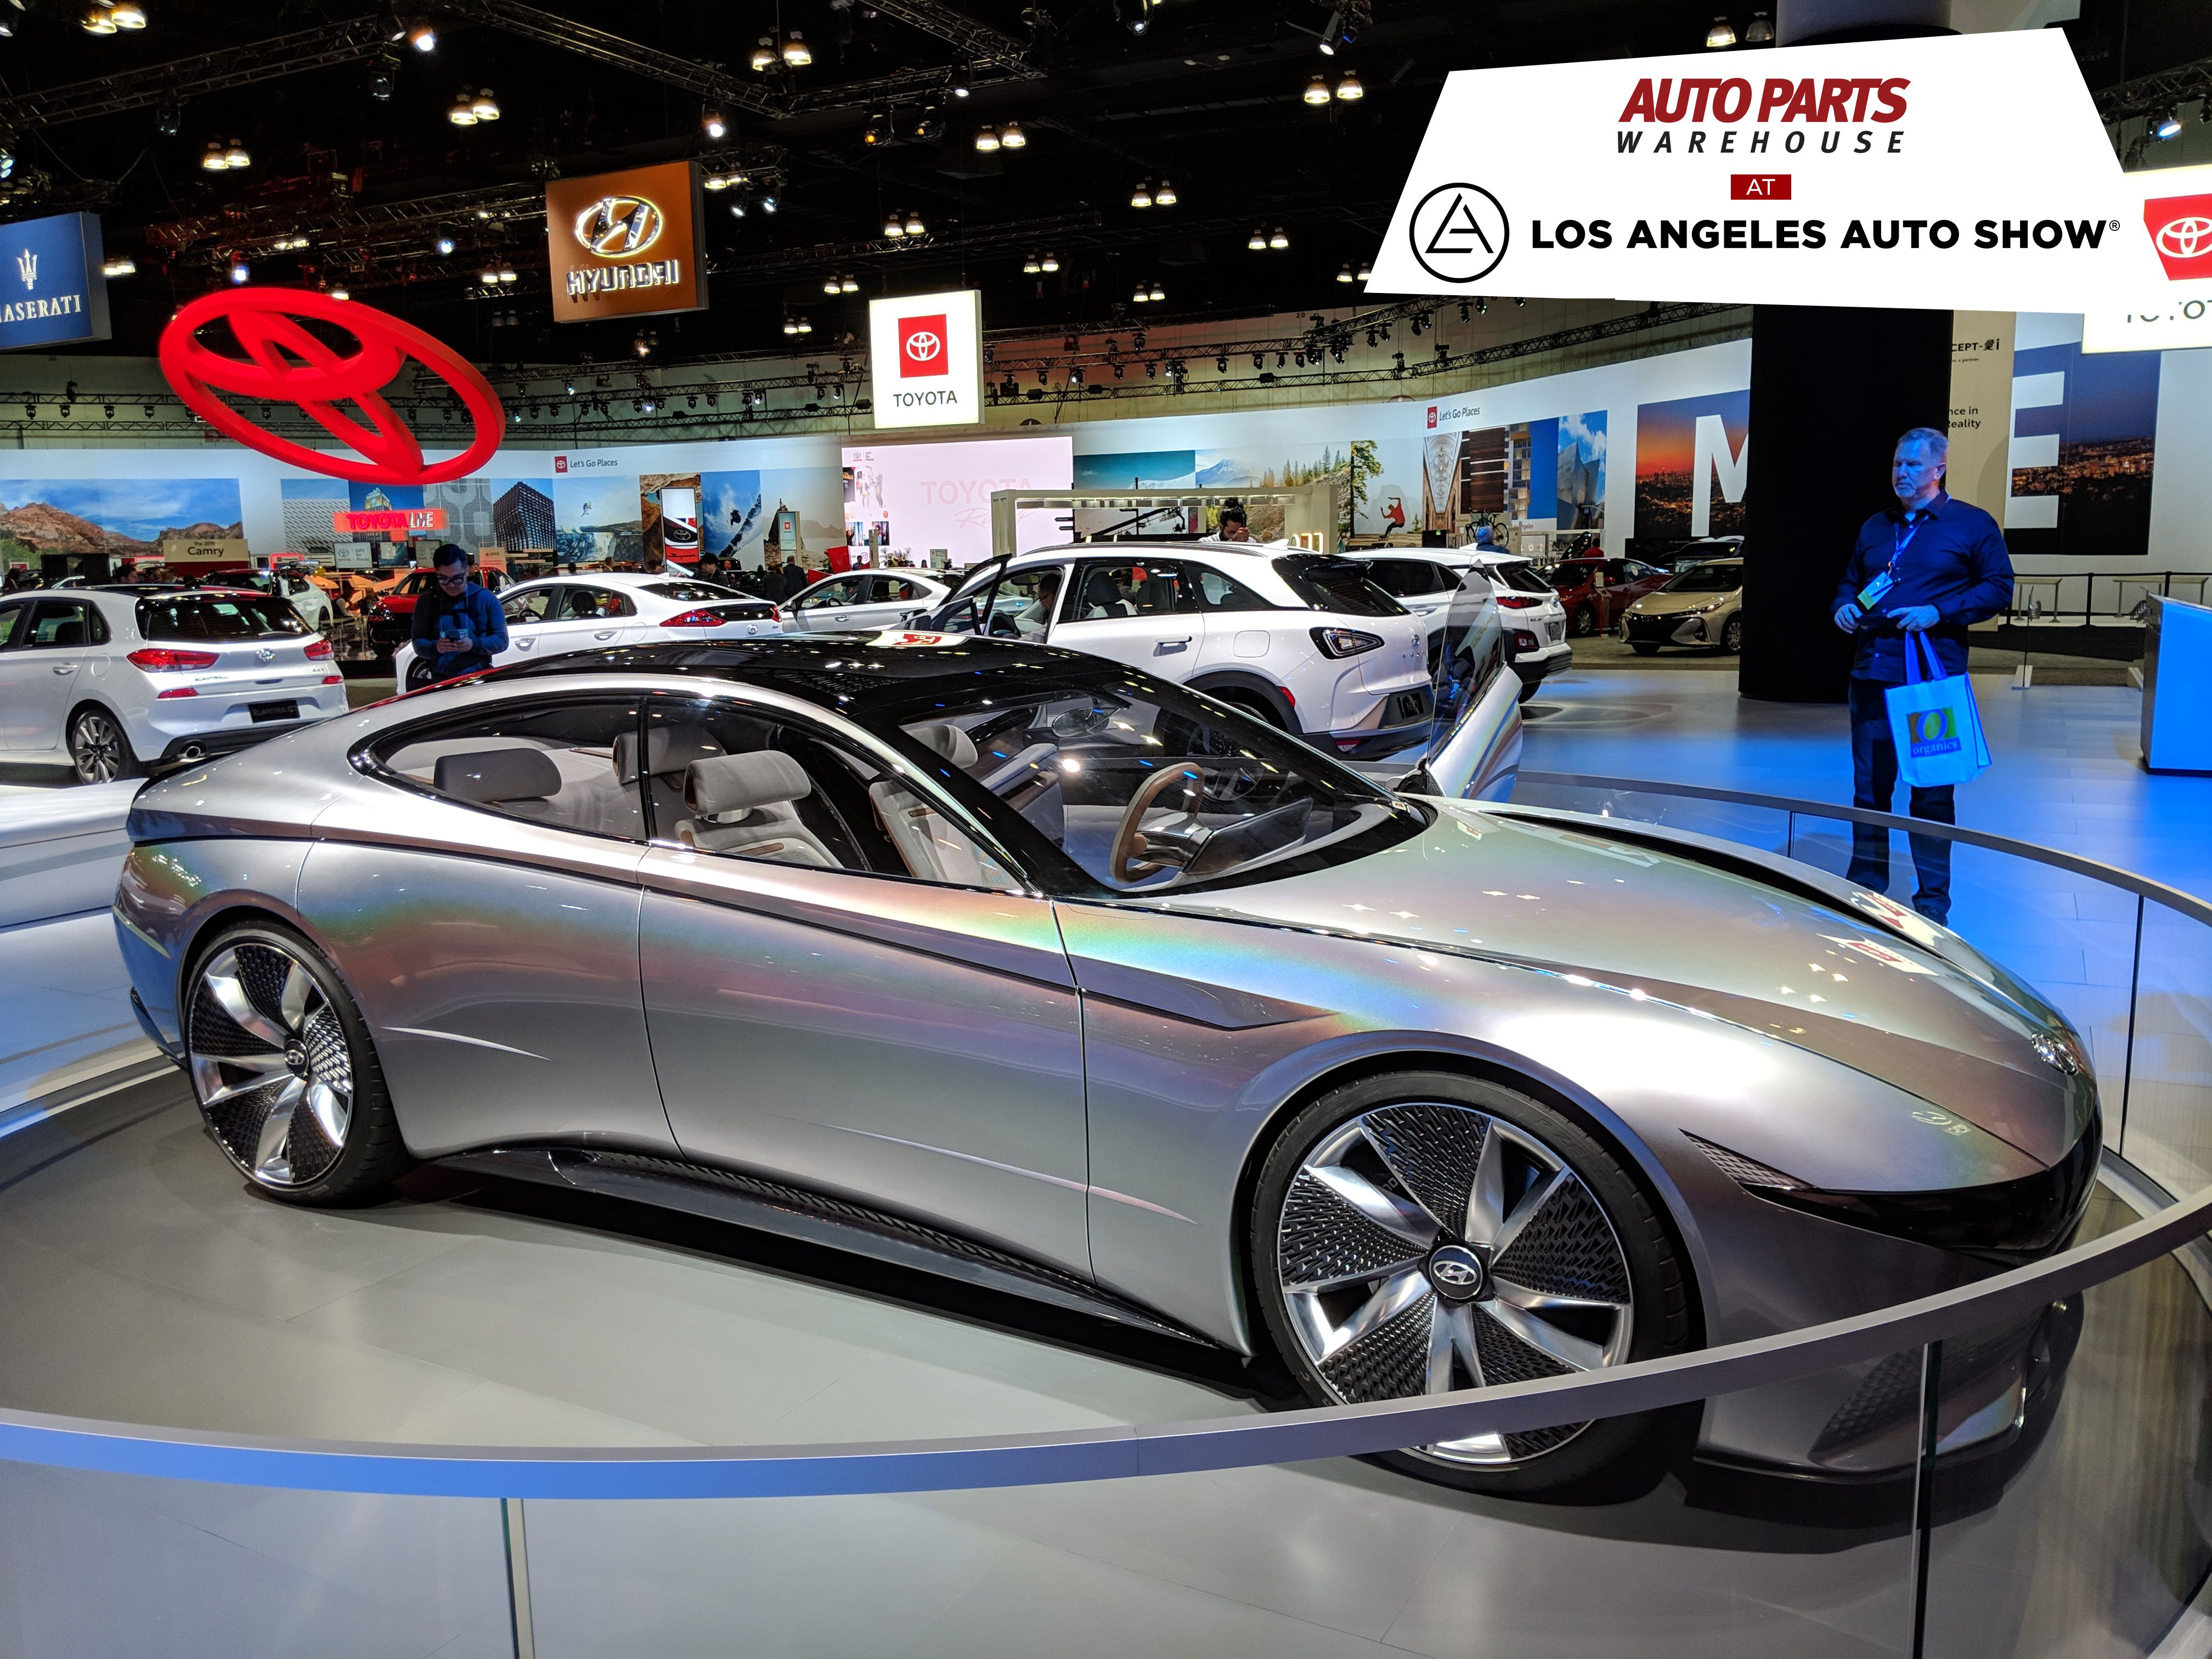 Auto Parts Warehouse Dropped By The Los Angeles Auto Show One Of The Largest Auto Shows In The World Here Are Som Discount Car La Auto Show Auto Parts Online